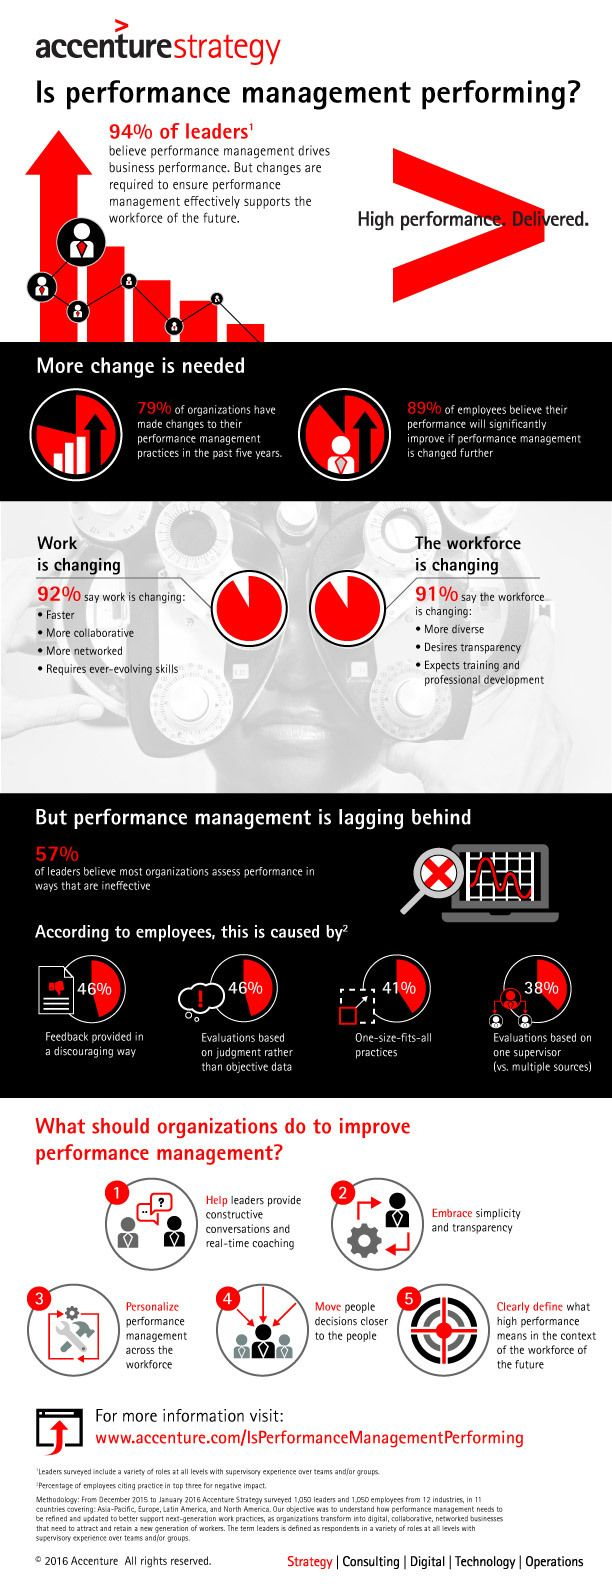 Personalized Performance Management is Essential to Meet the Needs of the Workforce of the Future, Finds New Accenture Strategy Research